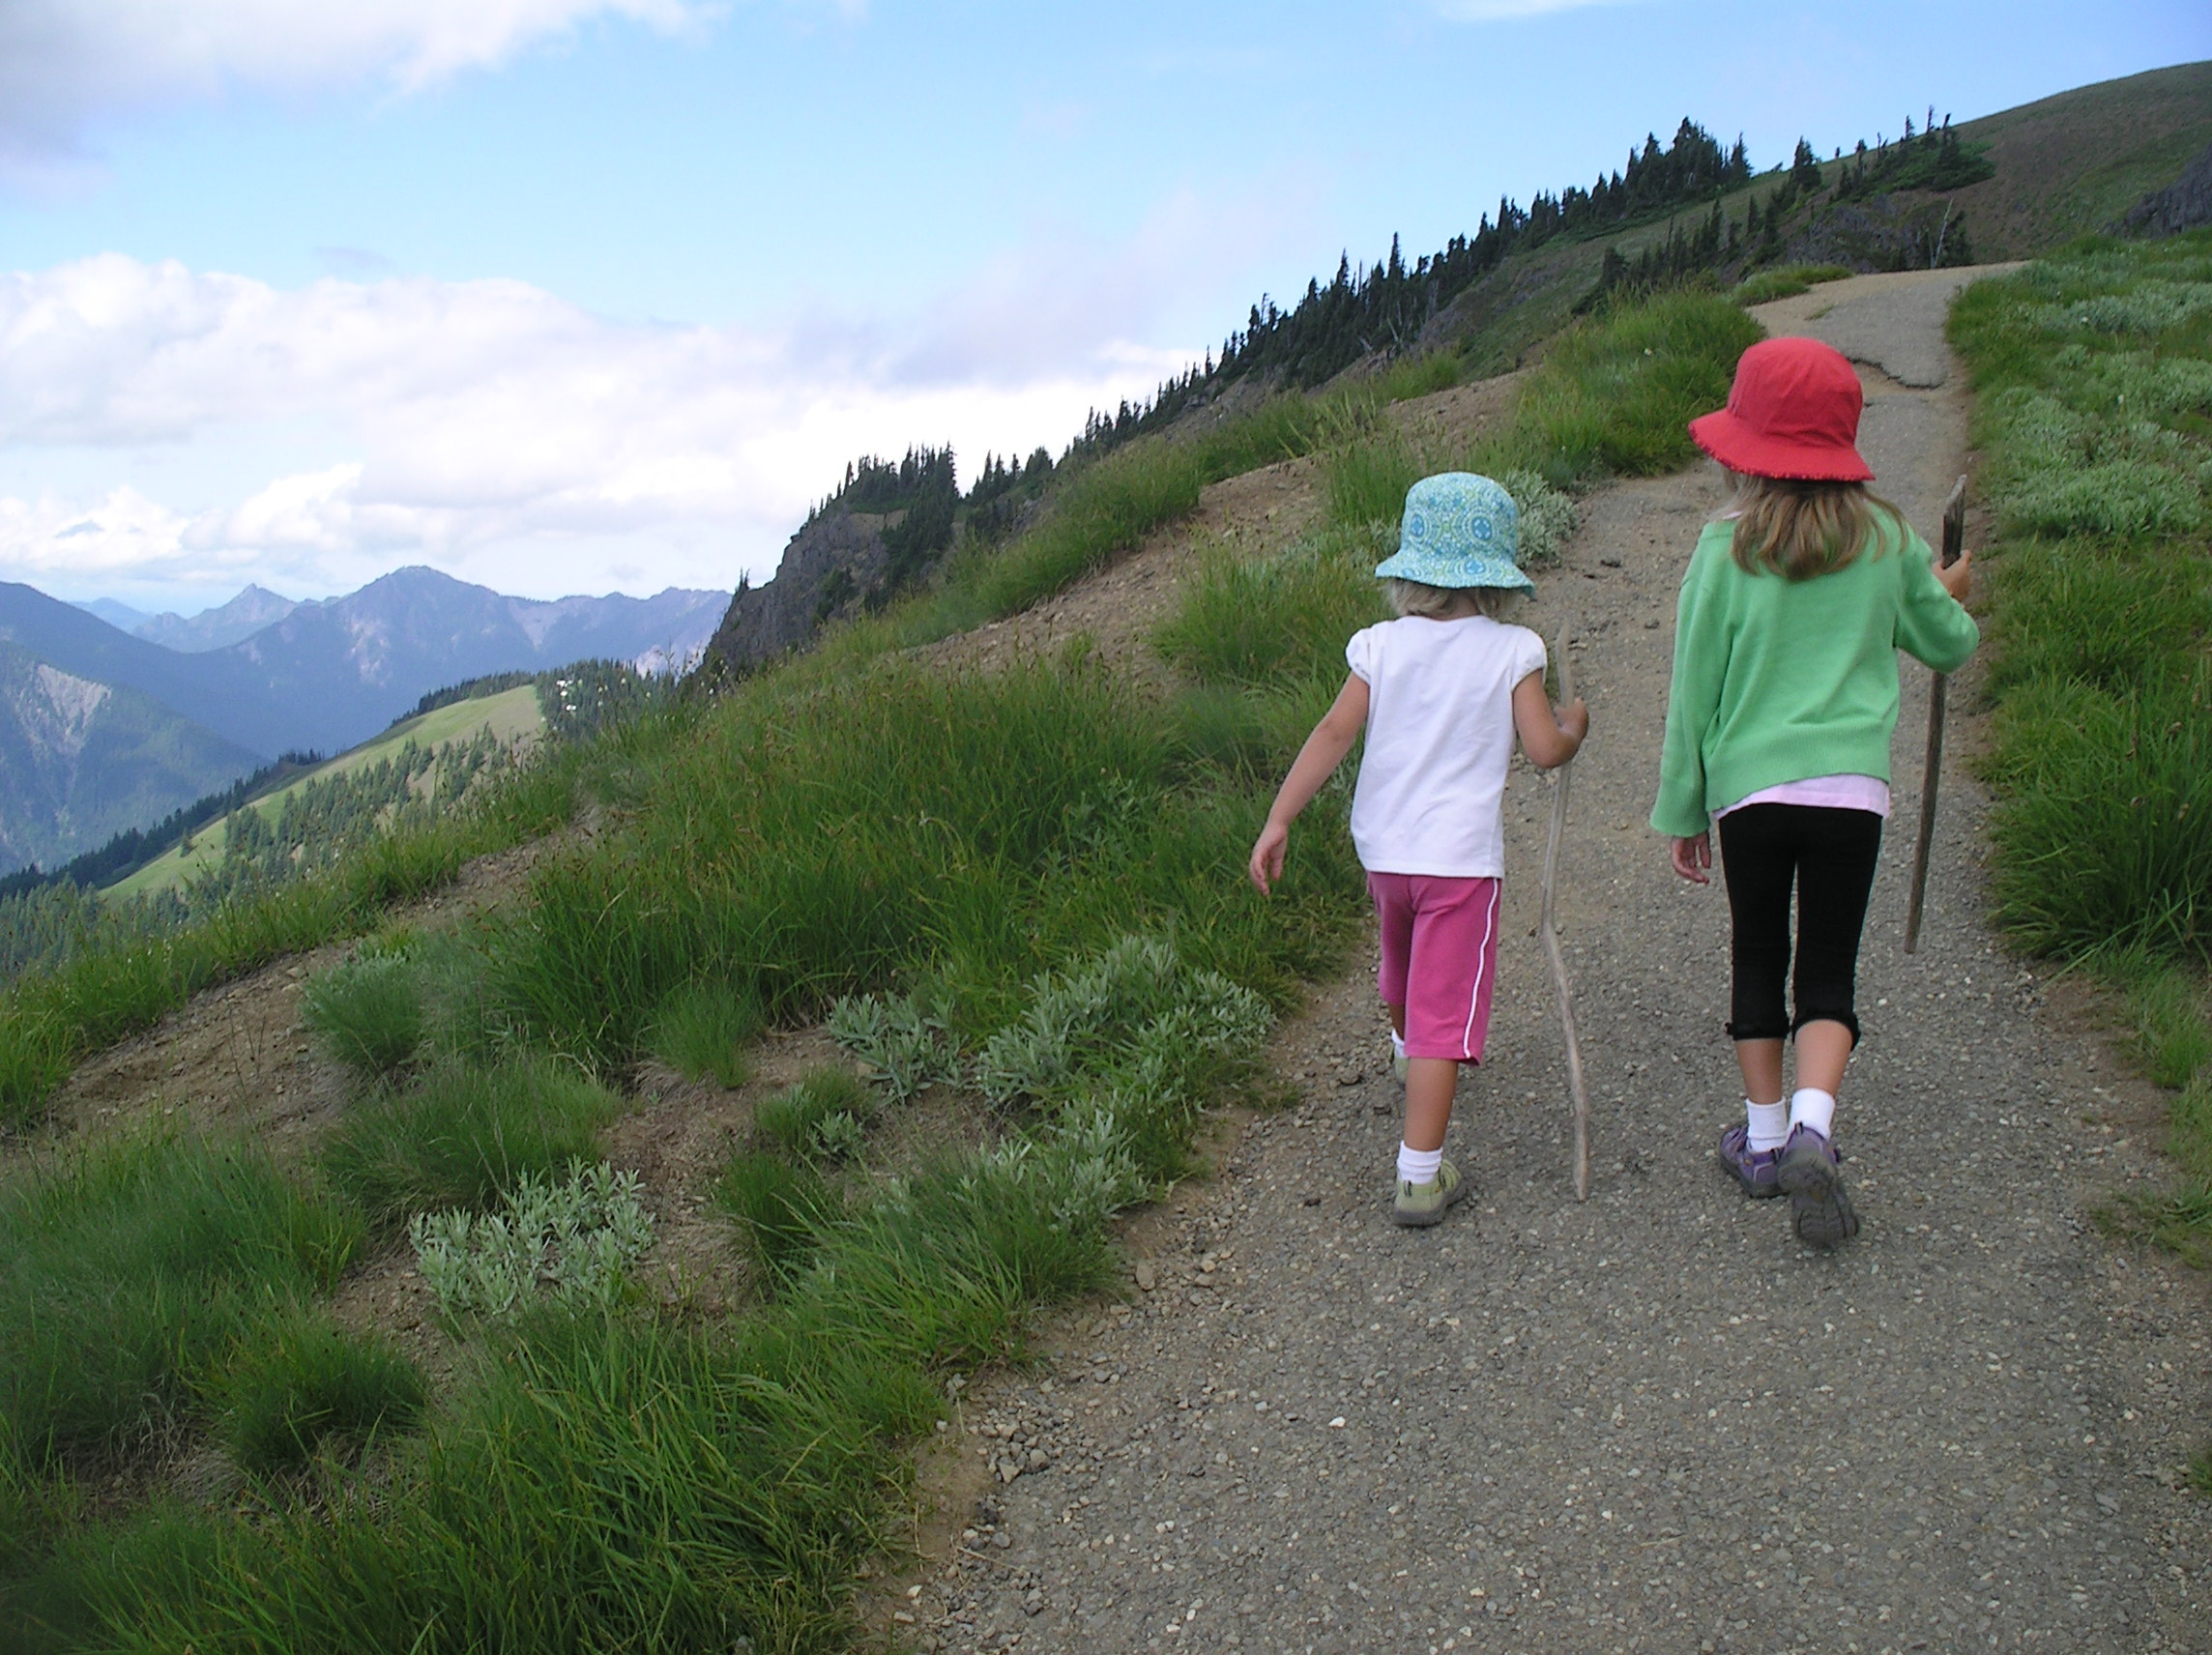 Girls hiking in the Olympic National Park